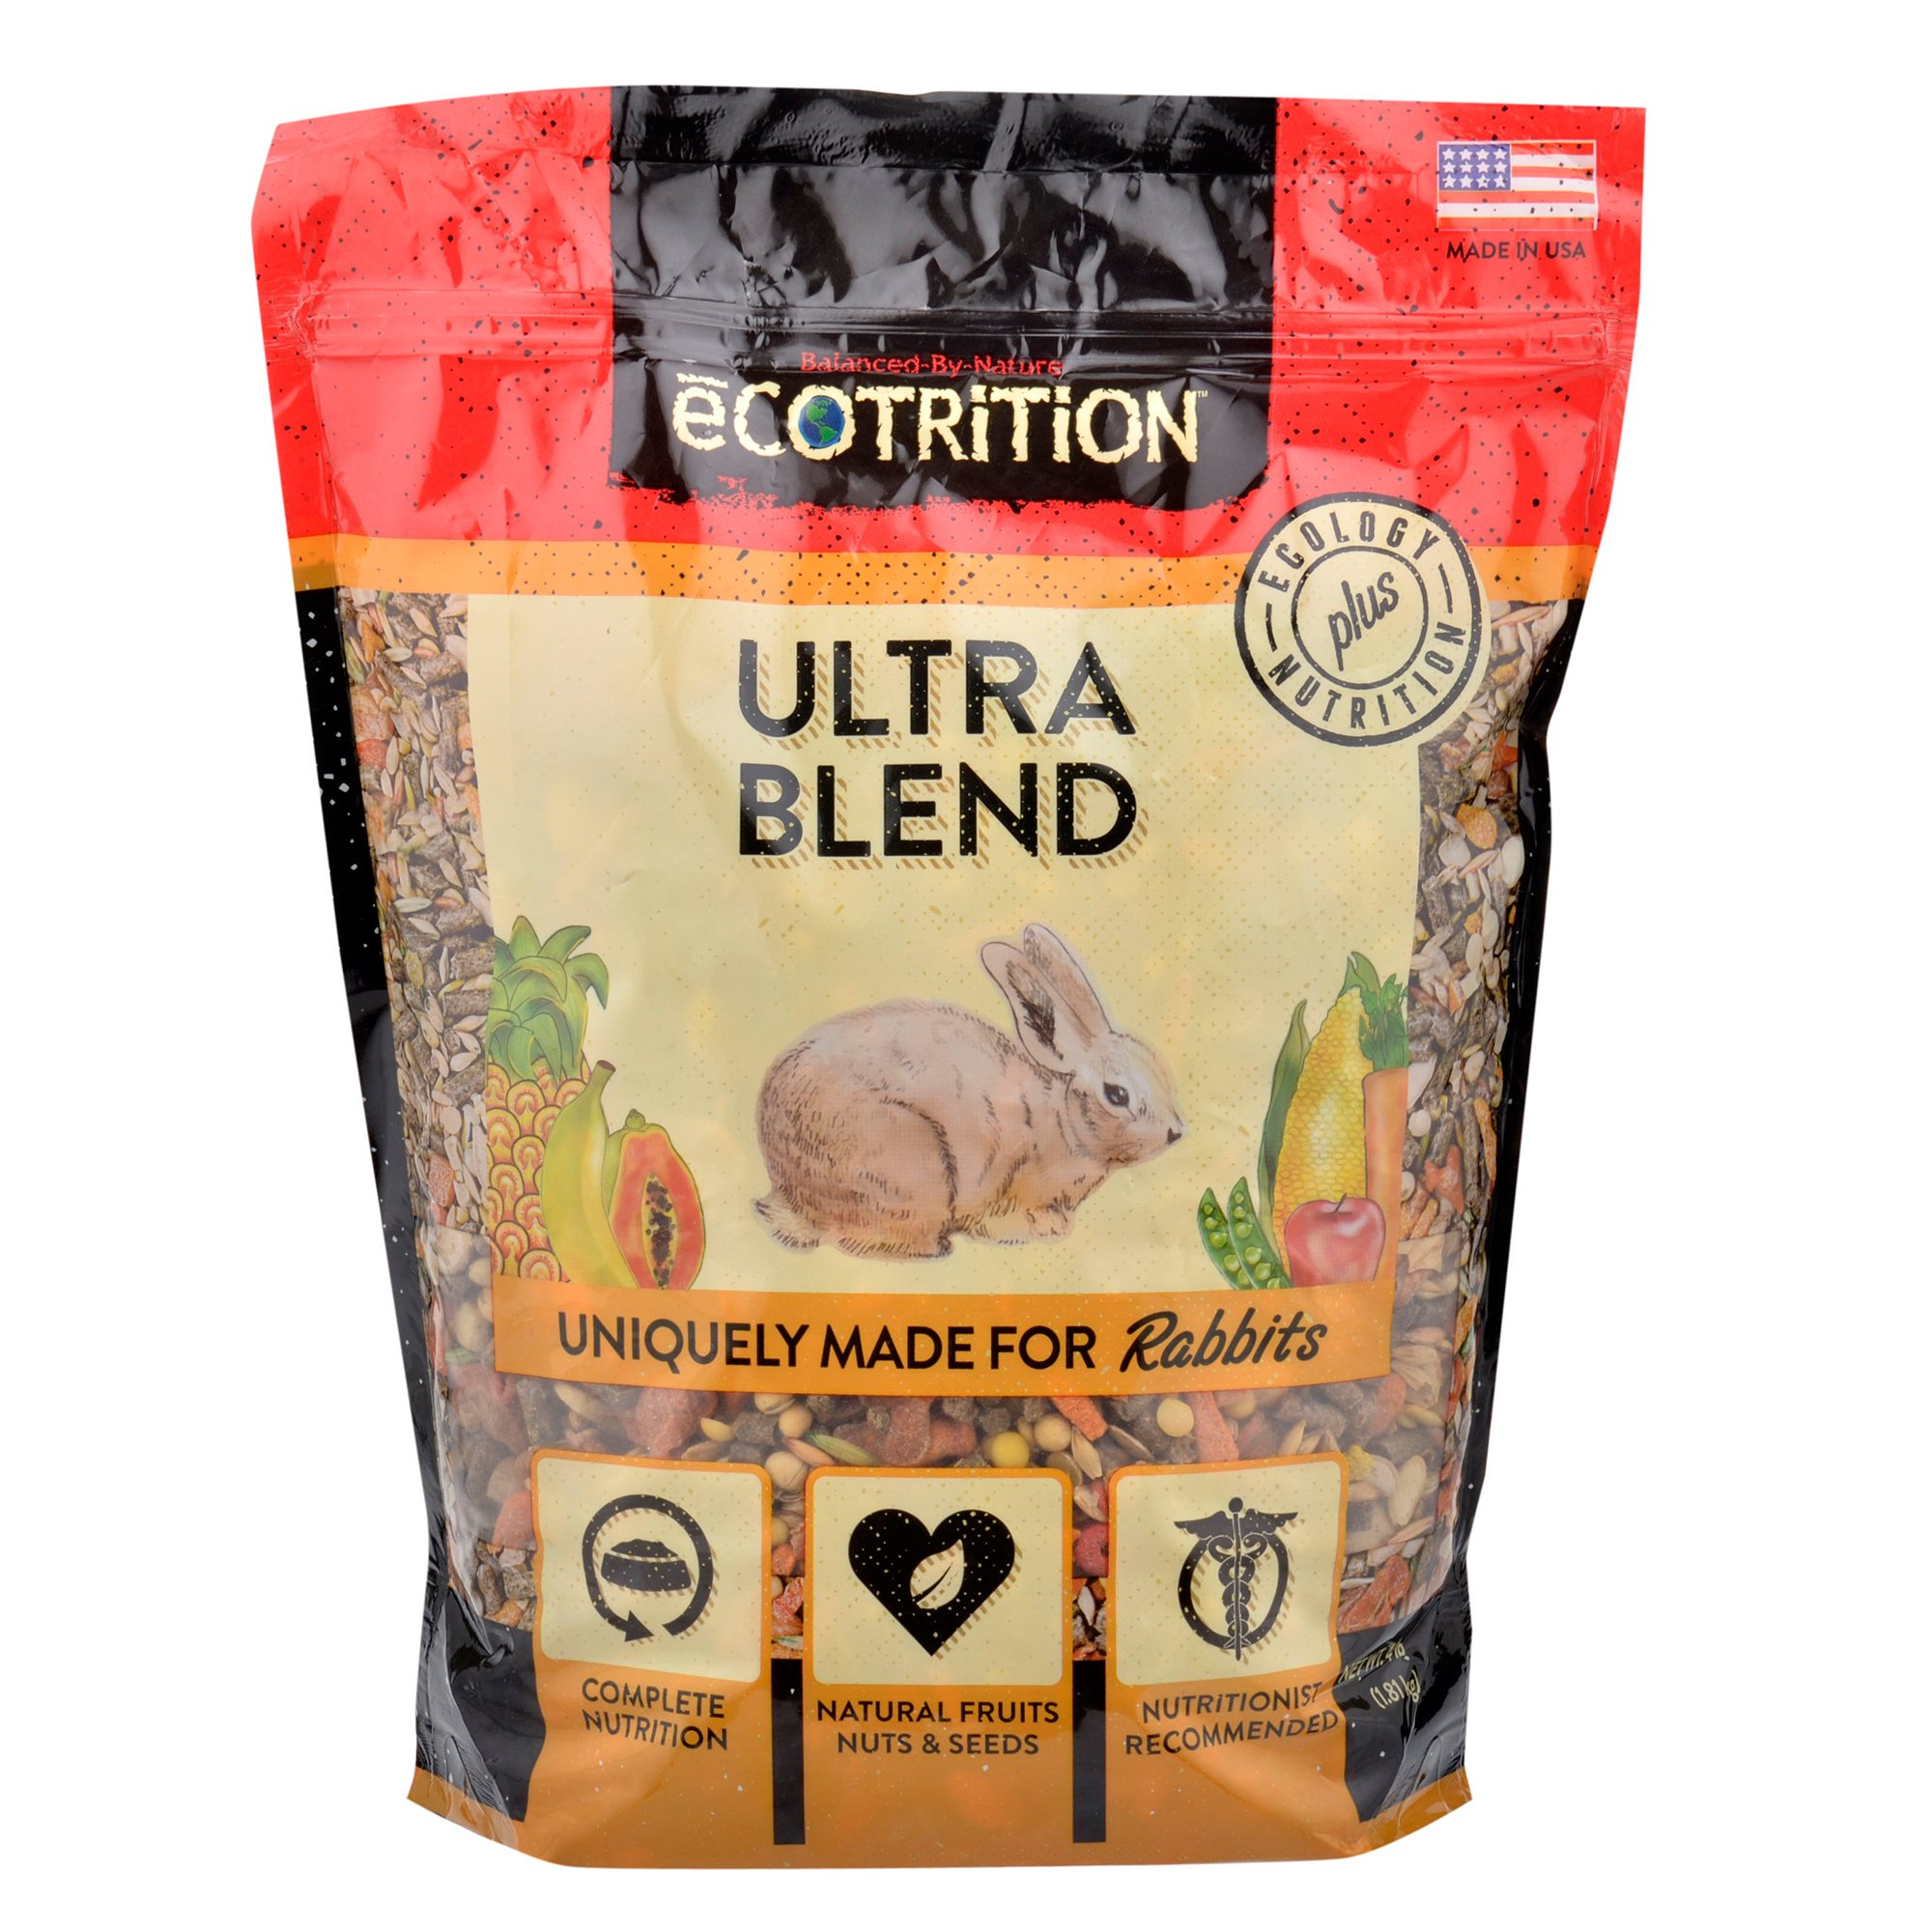 eCOTRITION Ultra Blend Rabbit Food